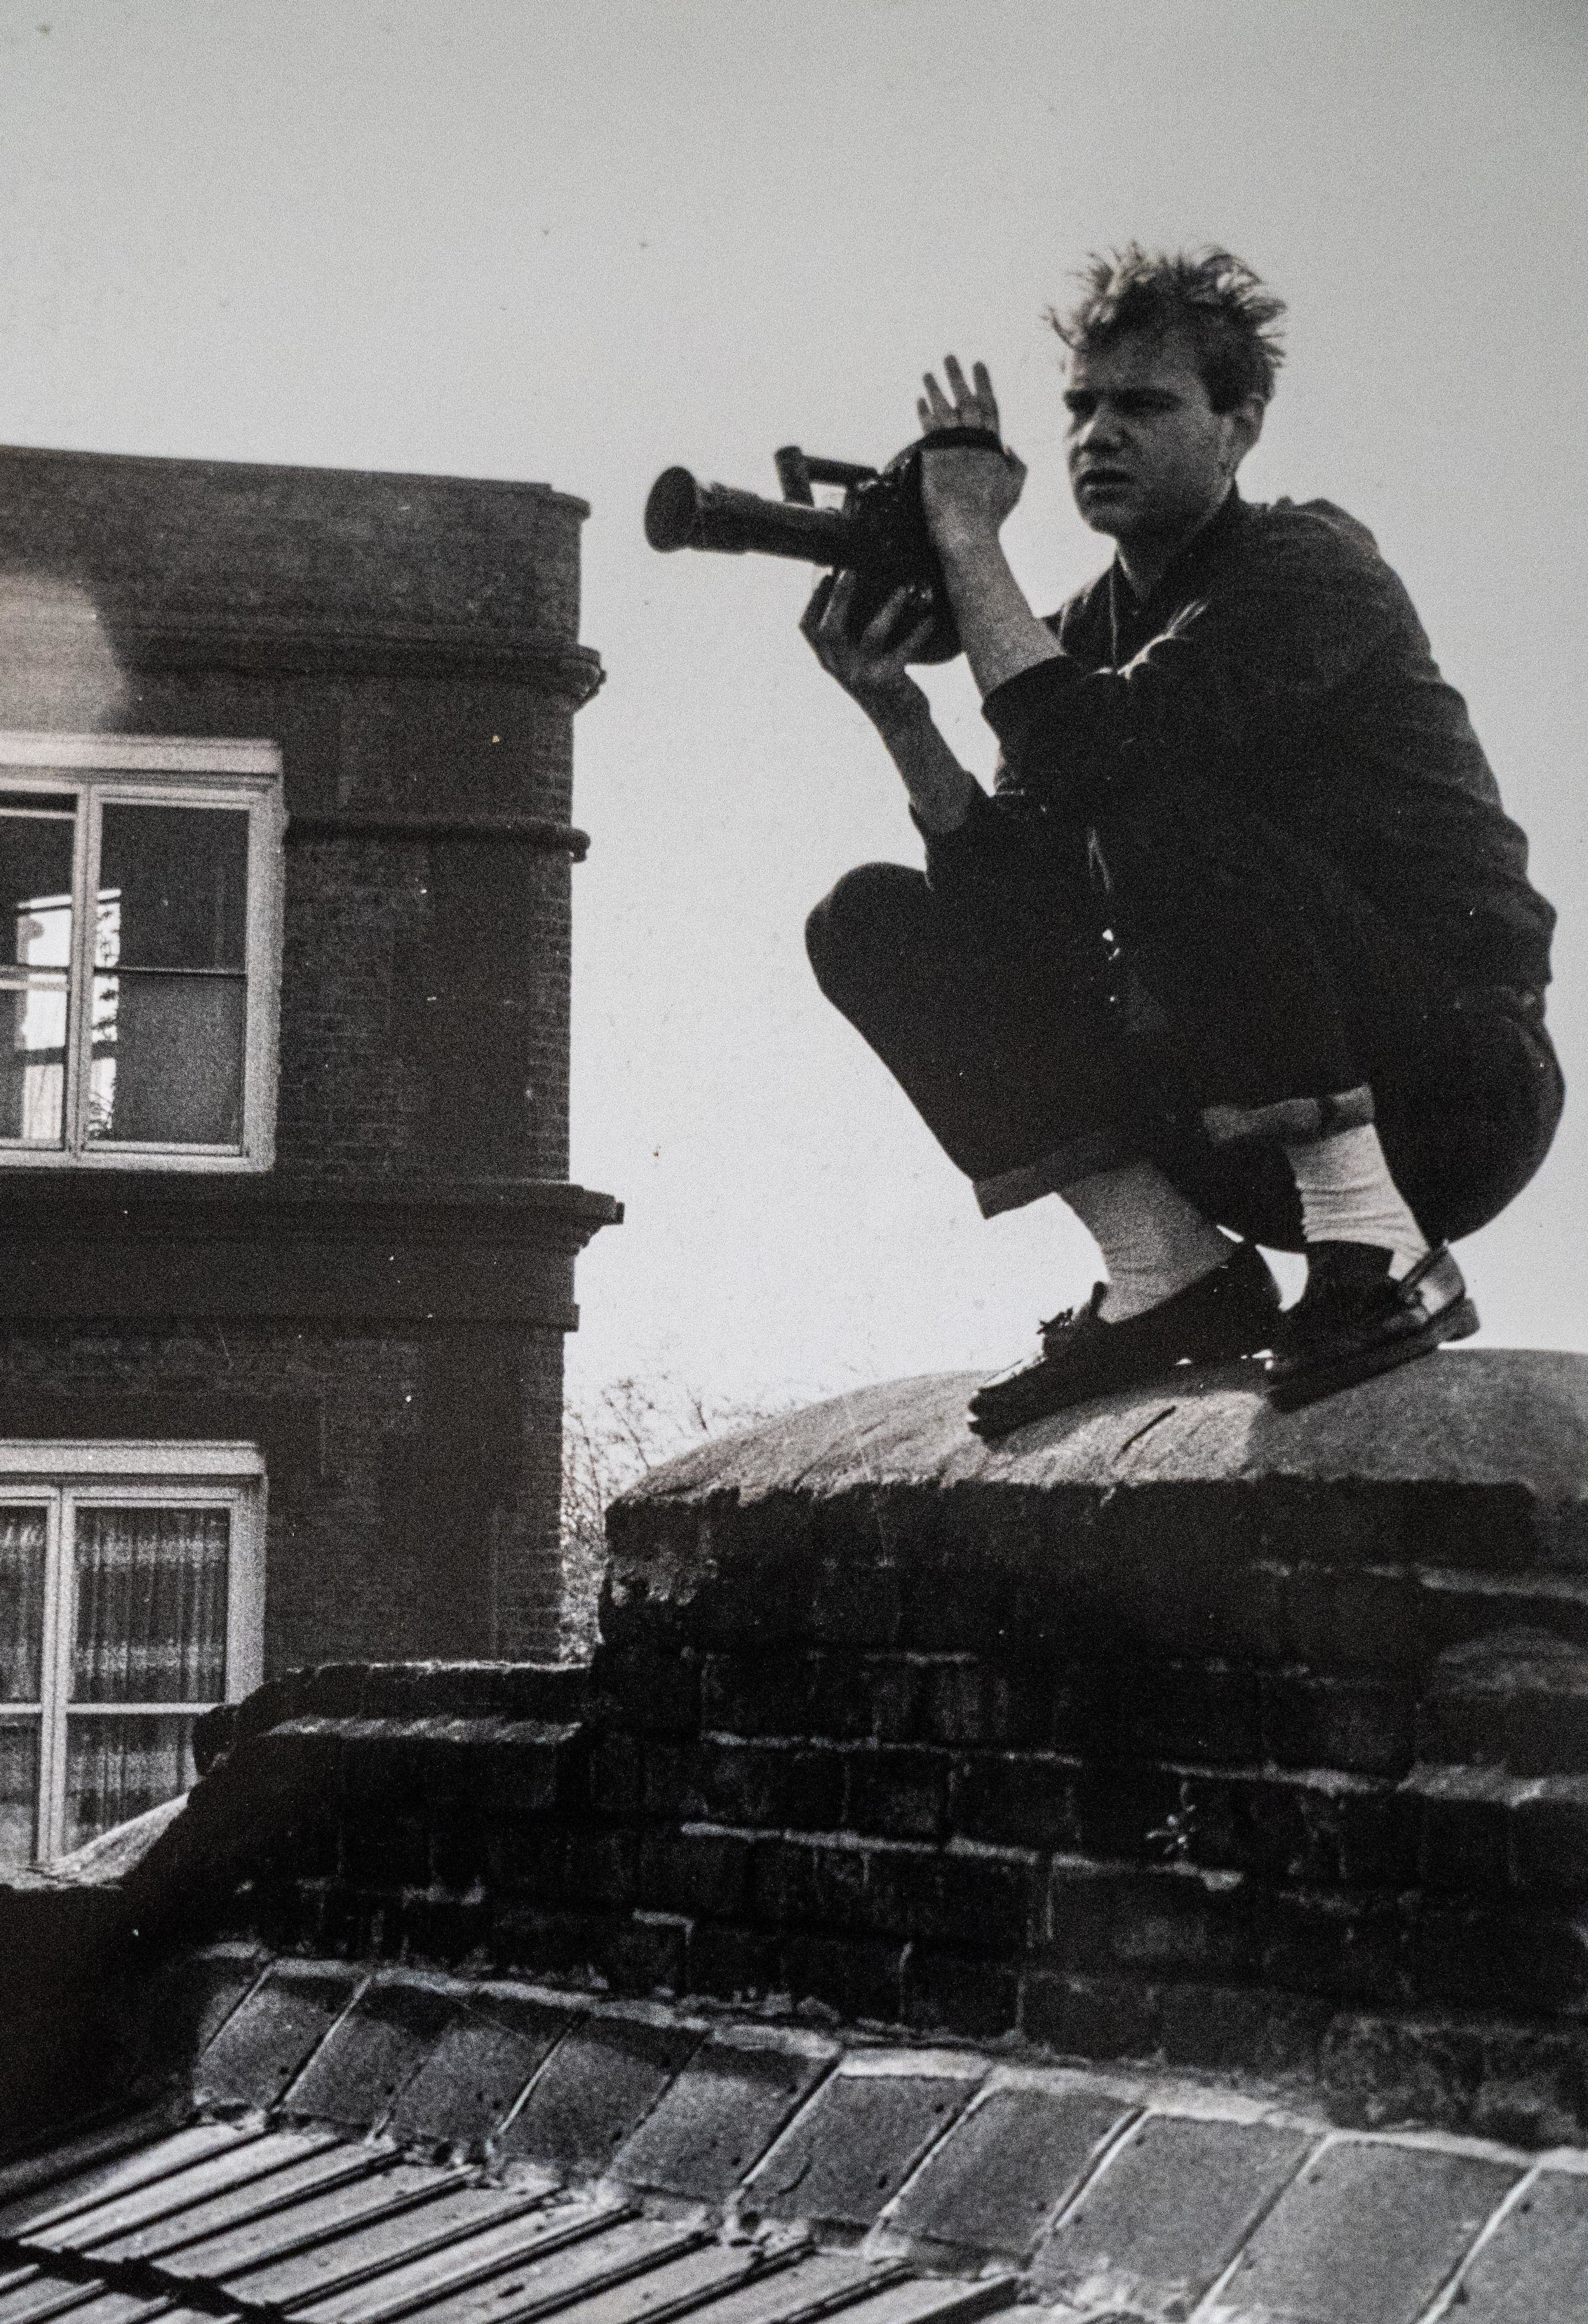 - SO THIS WAS ME BACK IN THE DAY…That's how long I've been addicted to telling stories with a camera, back when loafers with white socks, rolls of celluloid film and prancing about on Camden rooftops were first in fashion.I tried being the straight guy, working for all those broadcasters and corporations. Ten long and often fun years of travelling the world shooting. But it just wasn't me. The offices. The desks. The politics.What was me? Turns out, 'me' is shooting the mad stuff, the bad stuff, the crazy stuff, the funny and the sad stuff. And yes, the simple and traditional stuff. The essential human stuff. YOUR stuff.